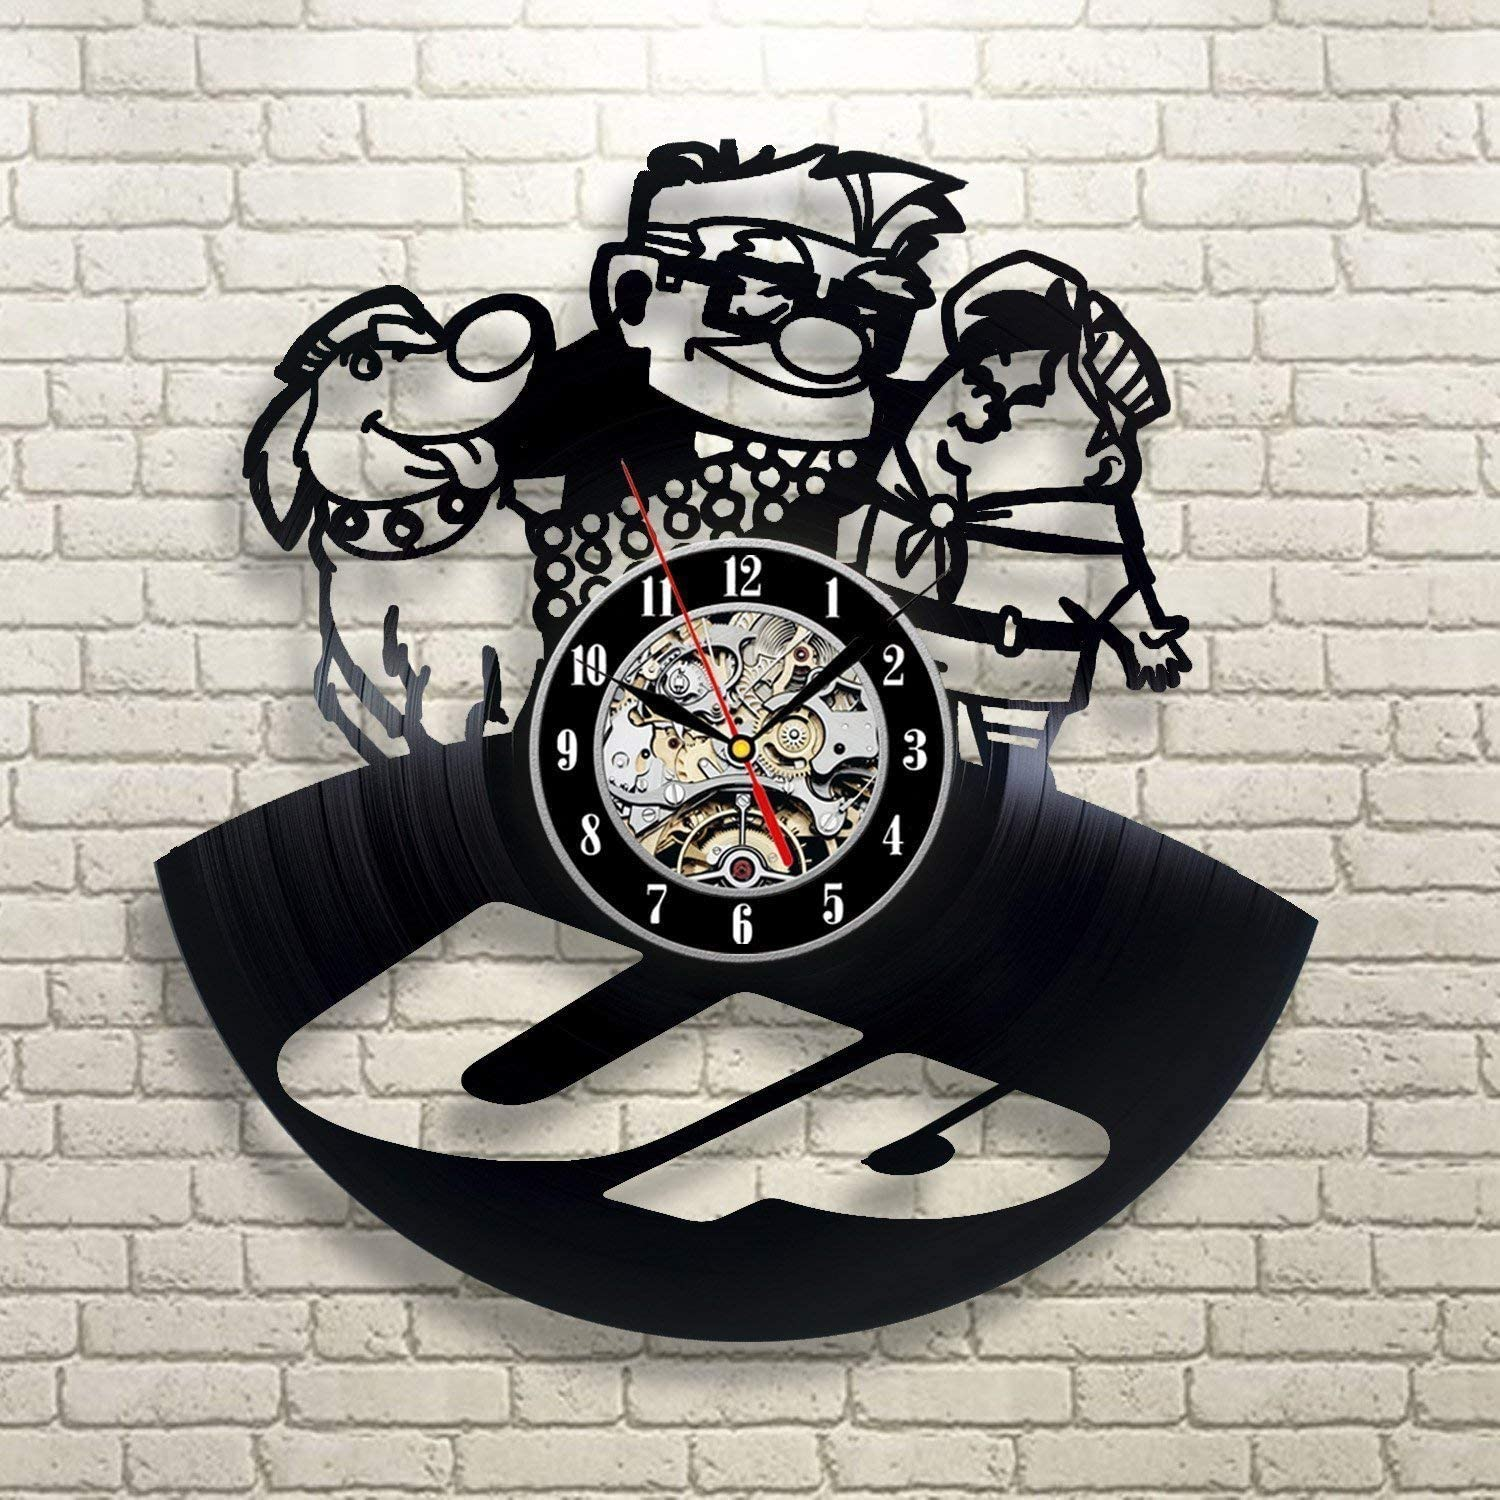 A picture of the UP clock